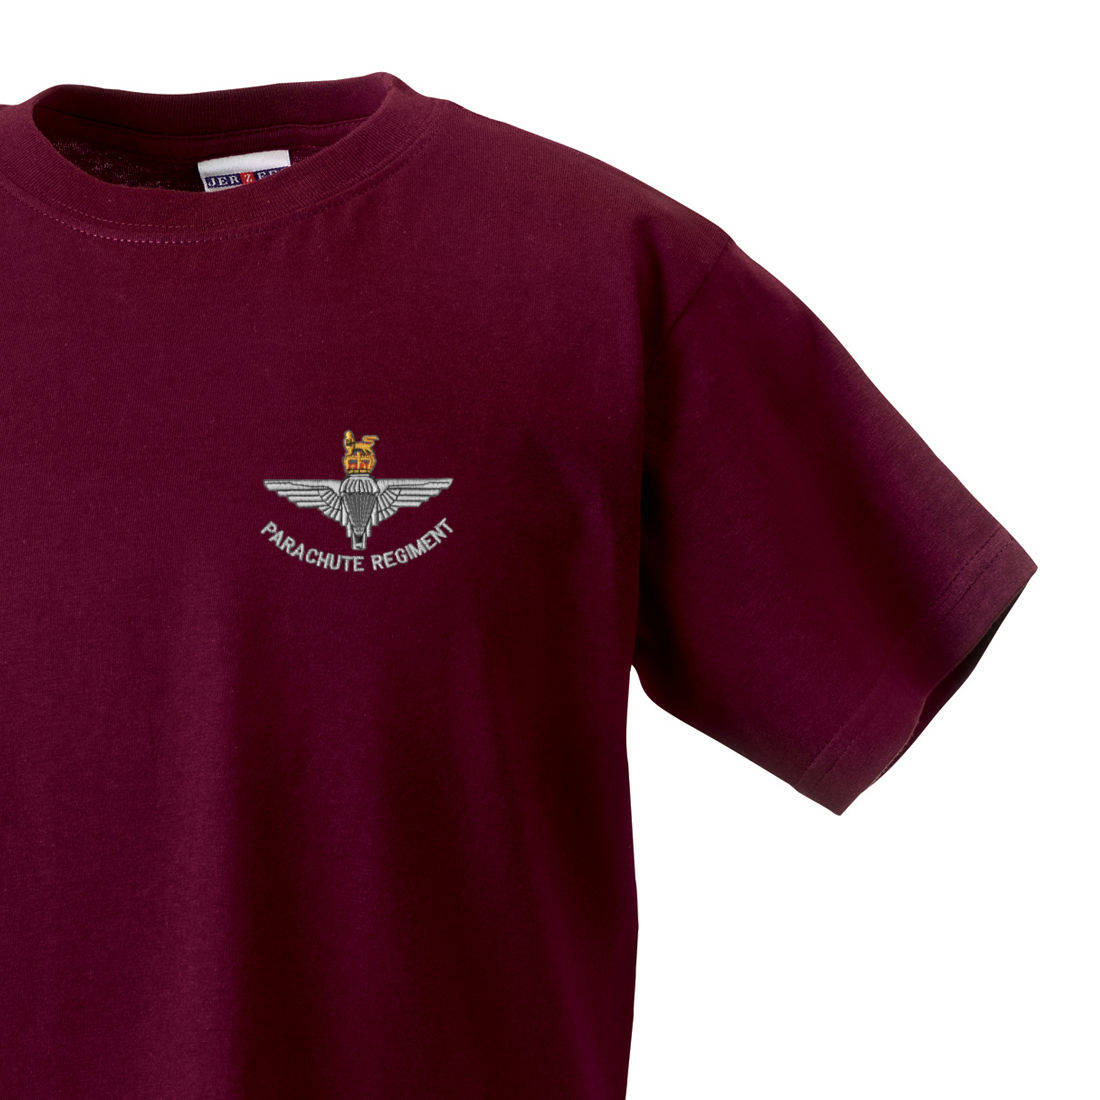 33cff842 Kids T-Shirt - The Airborne Shop